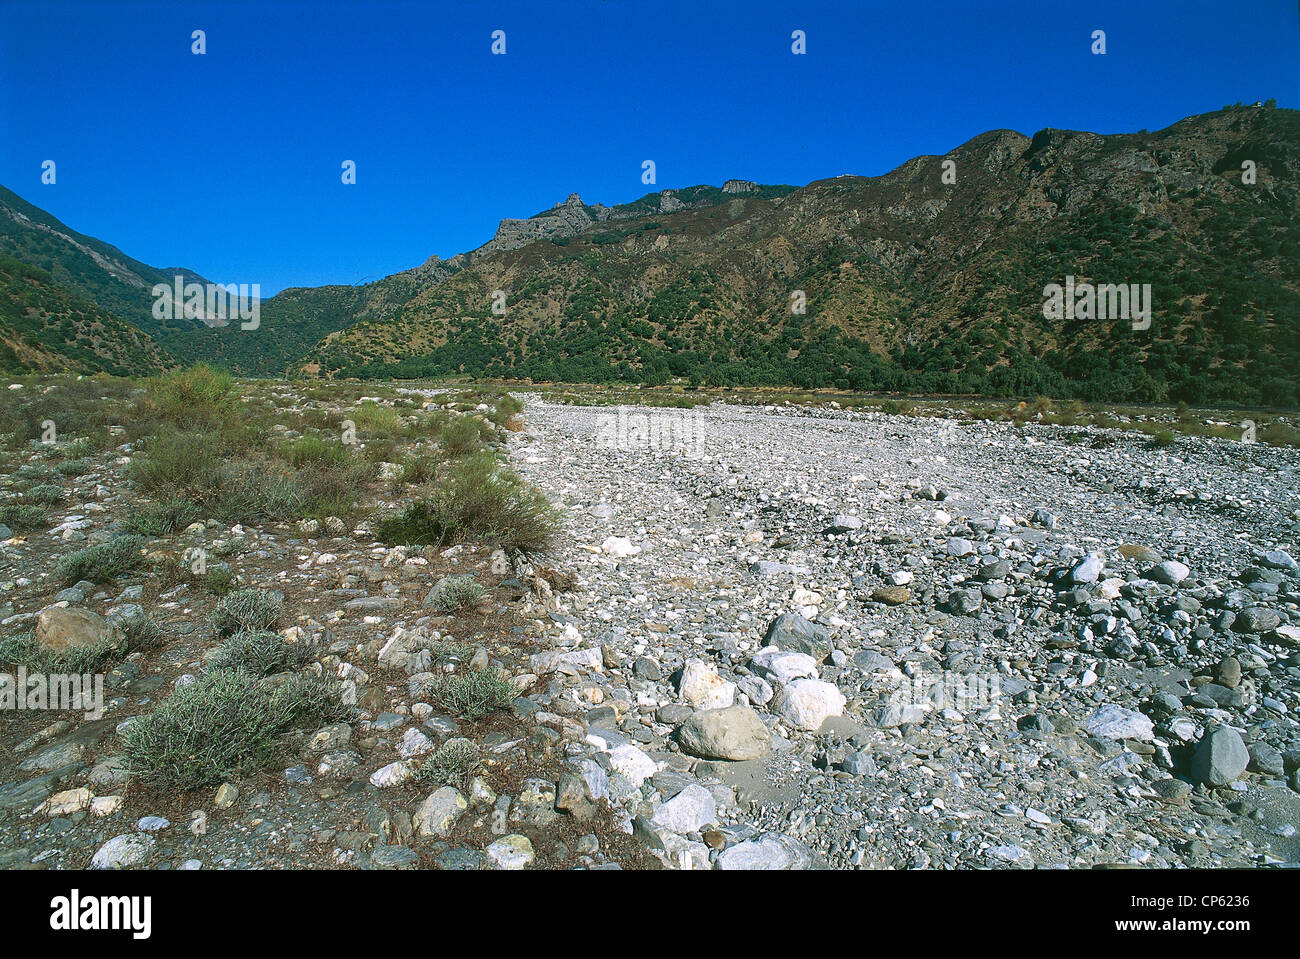 Calabria Aspromonte San Luca Rc High Resolution Stock Photography and  Images - Alamy